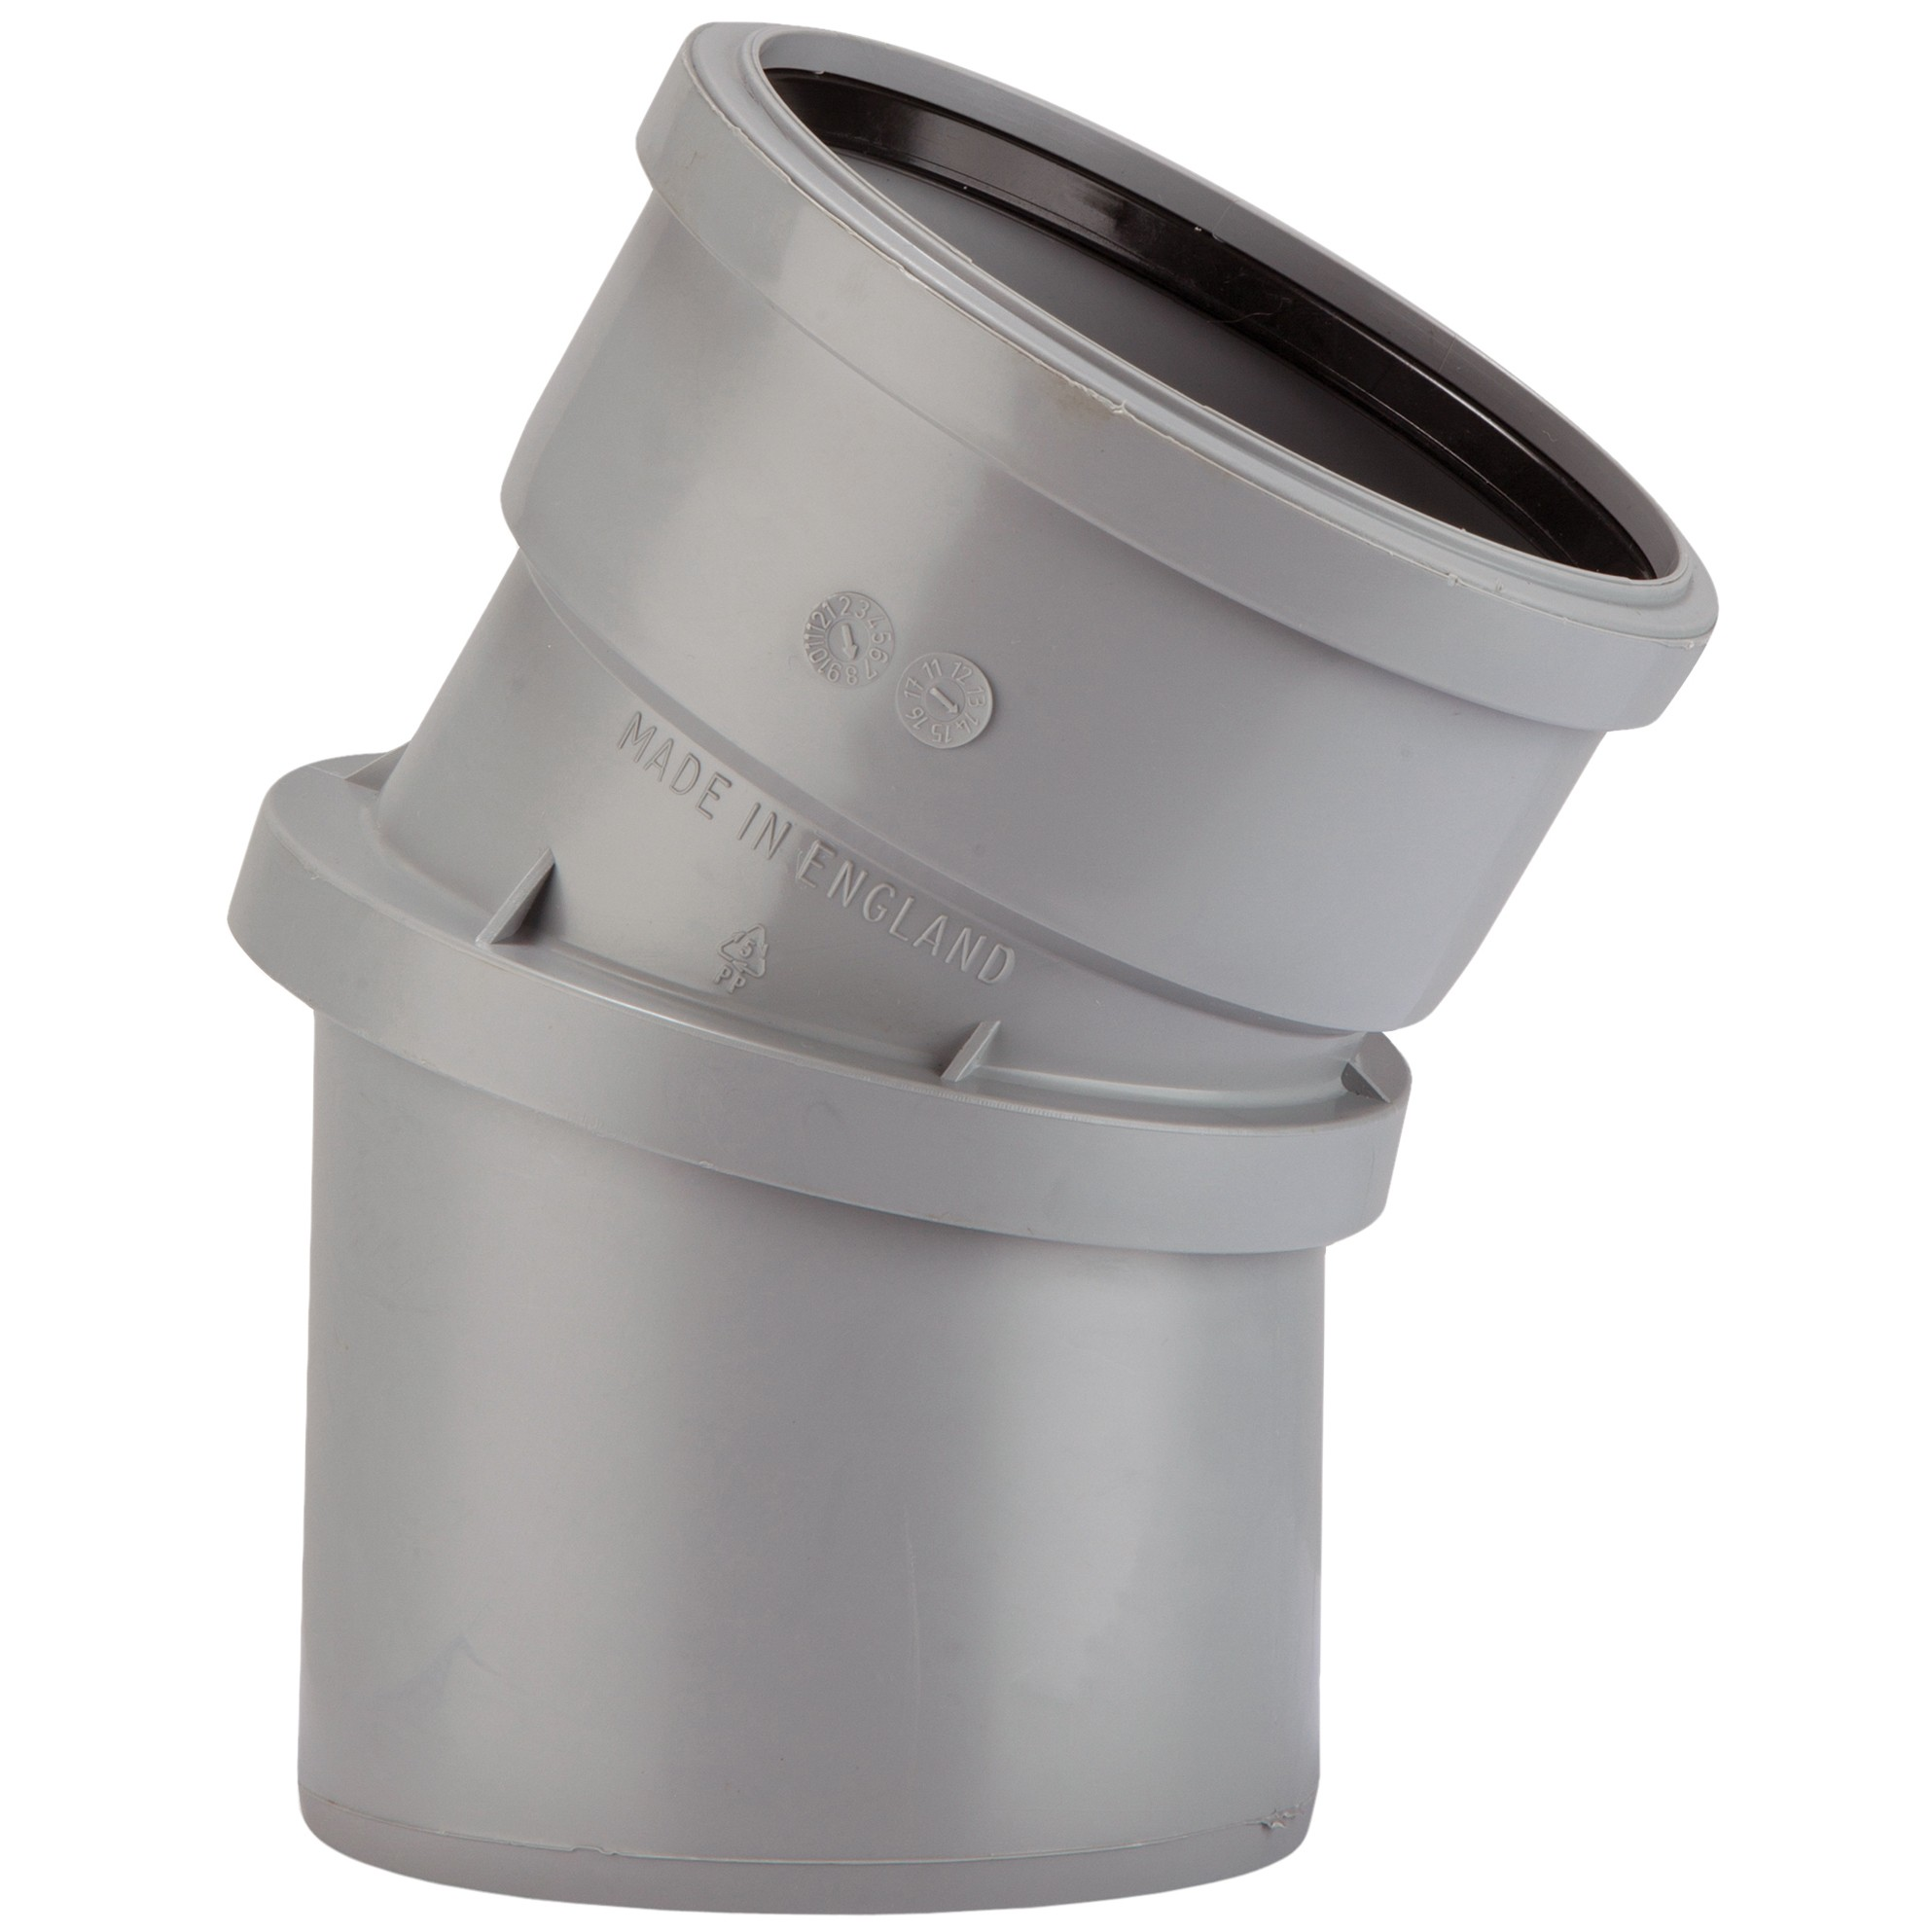 Polypipe 110mm Soil 0-30 Degree Adjustable Bend - Grey